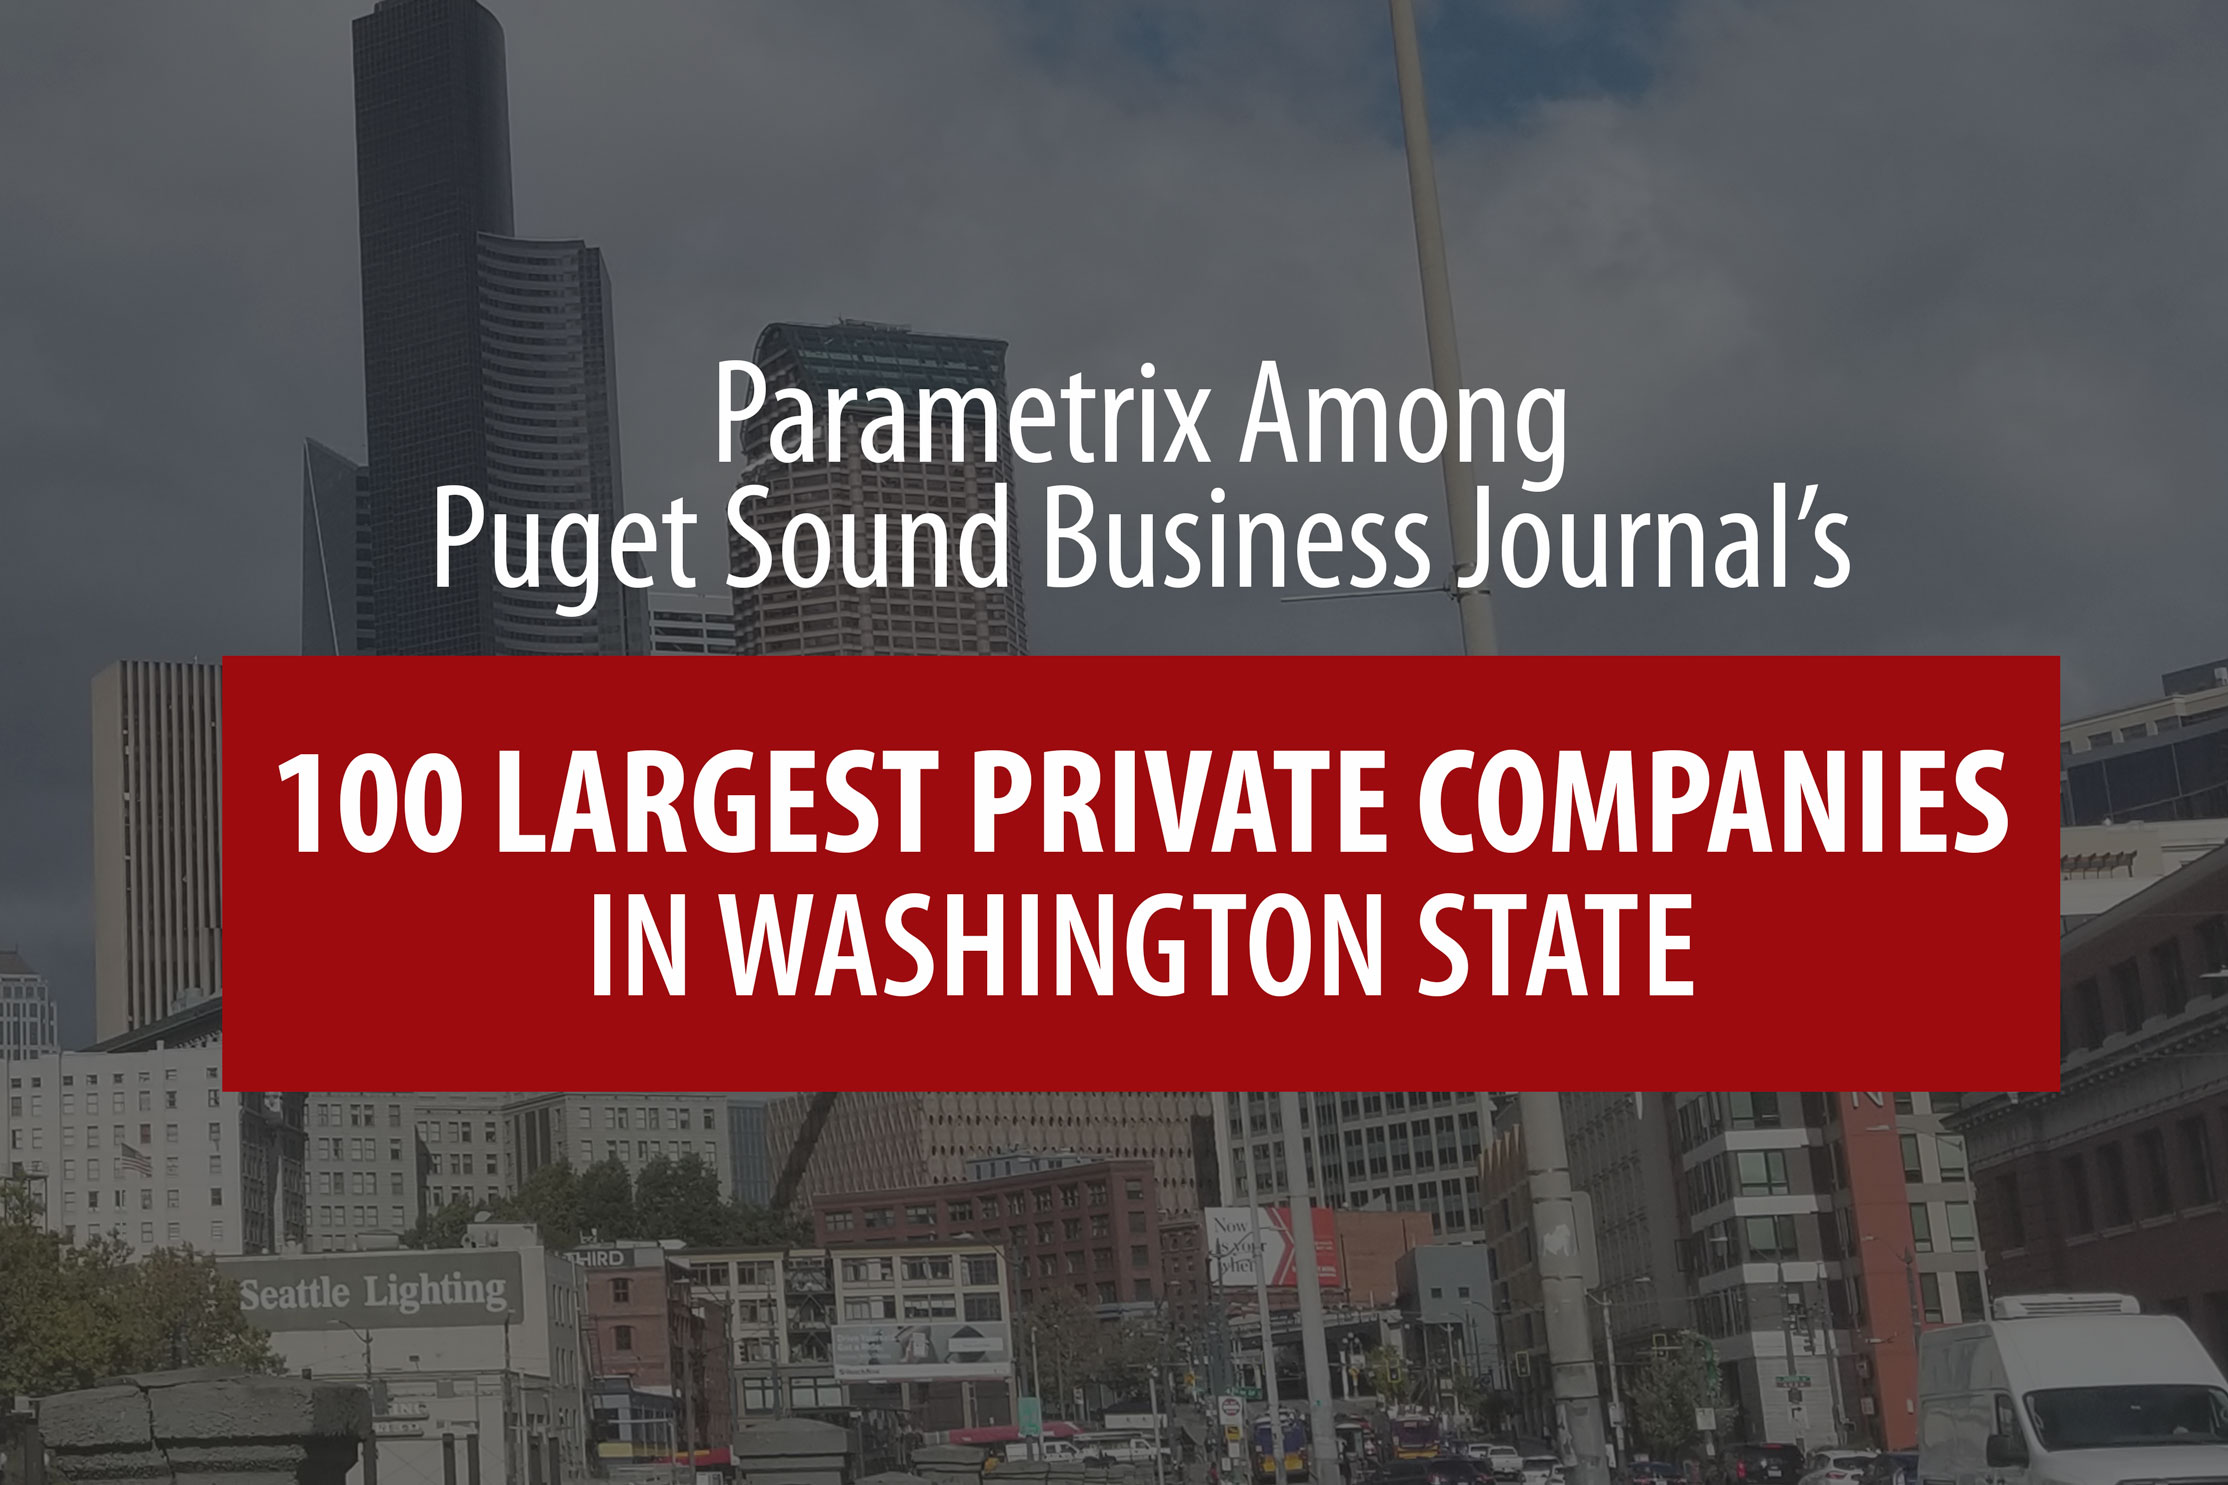 05 29 19 Largest Private Companies in Washington State: Parametrix